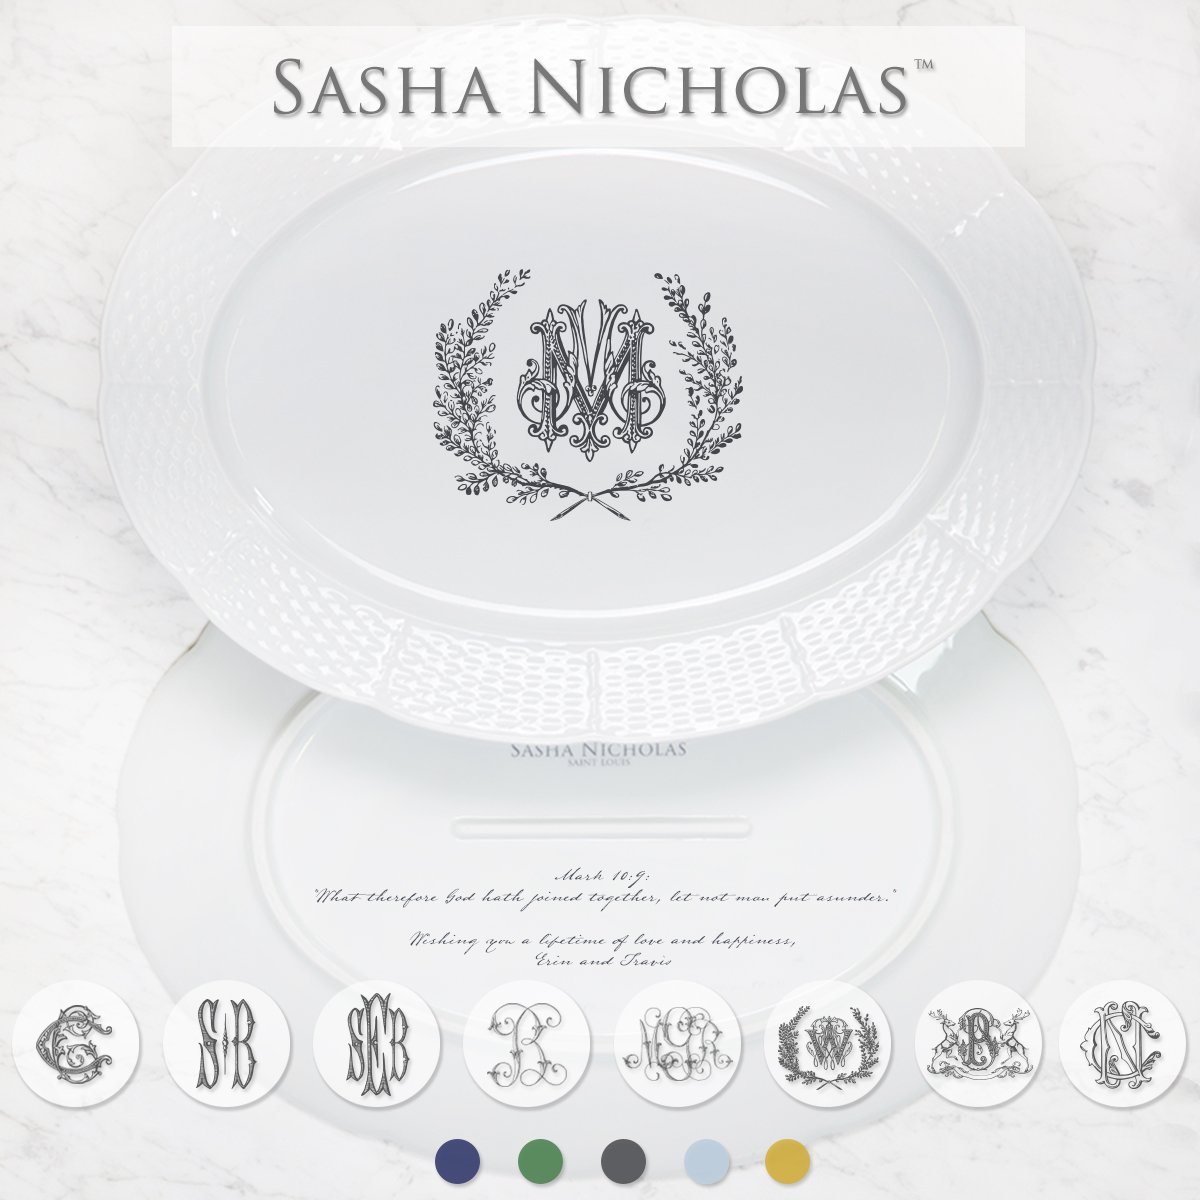 A beautiful addition to your dinnerware collection and to adorn your tablescapes with. It makes the perfect gift for your wedding registry with the included inscription on back. Choose from their signature font styles or use a custom monogram or crest of your choice! | Sasha Nicholas's white porcelain oval platter